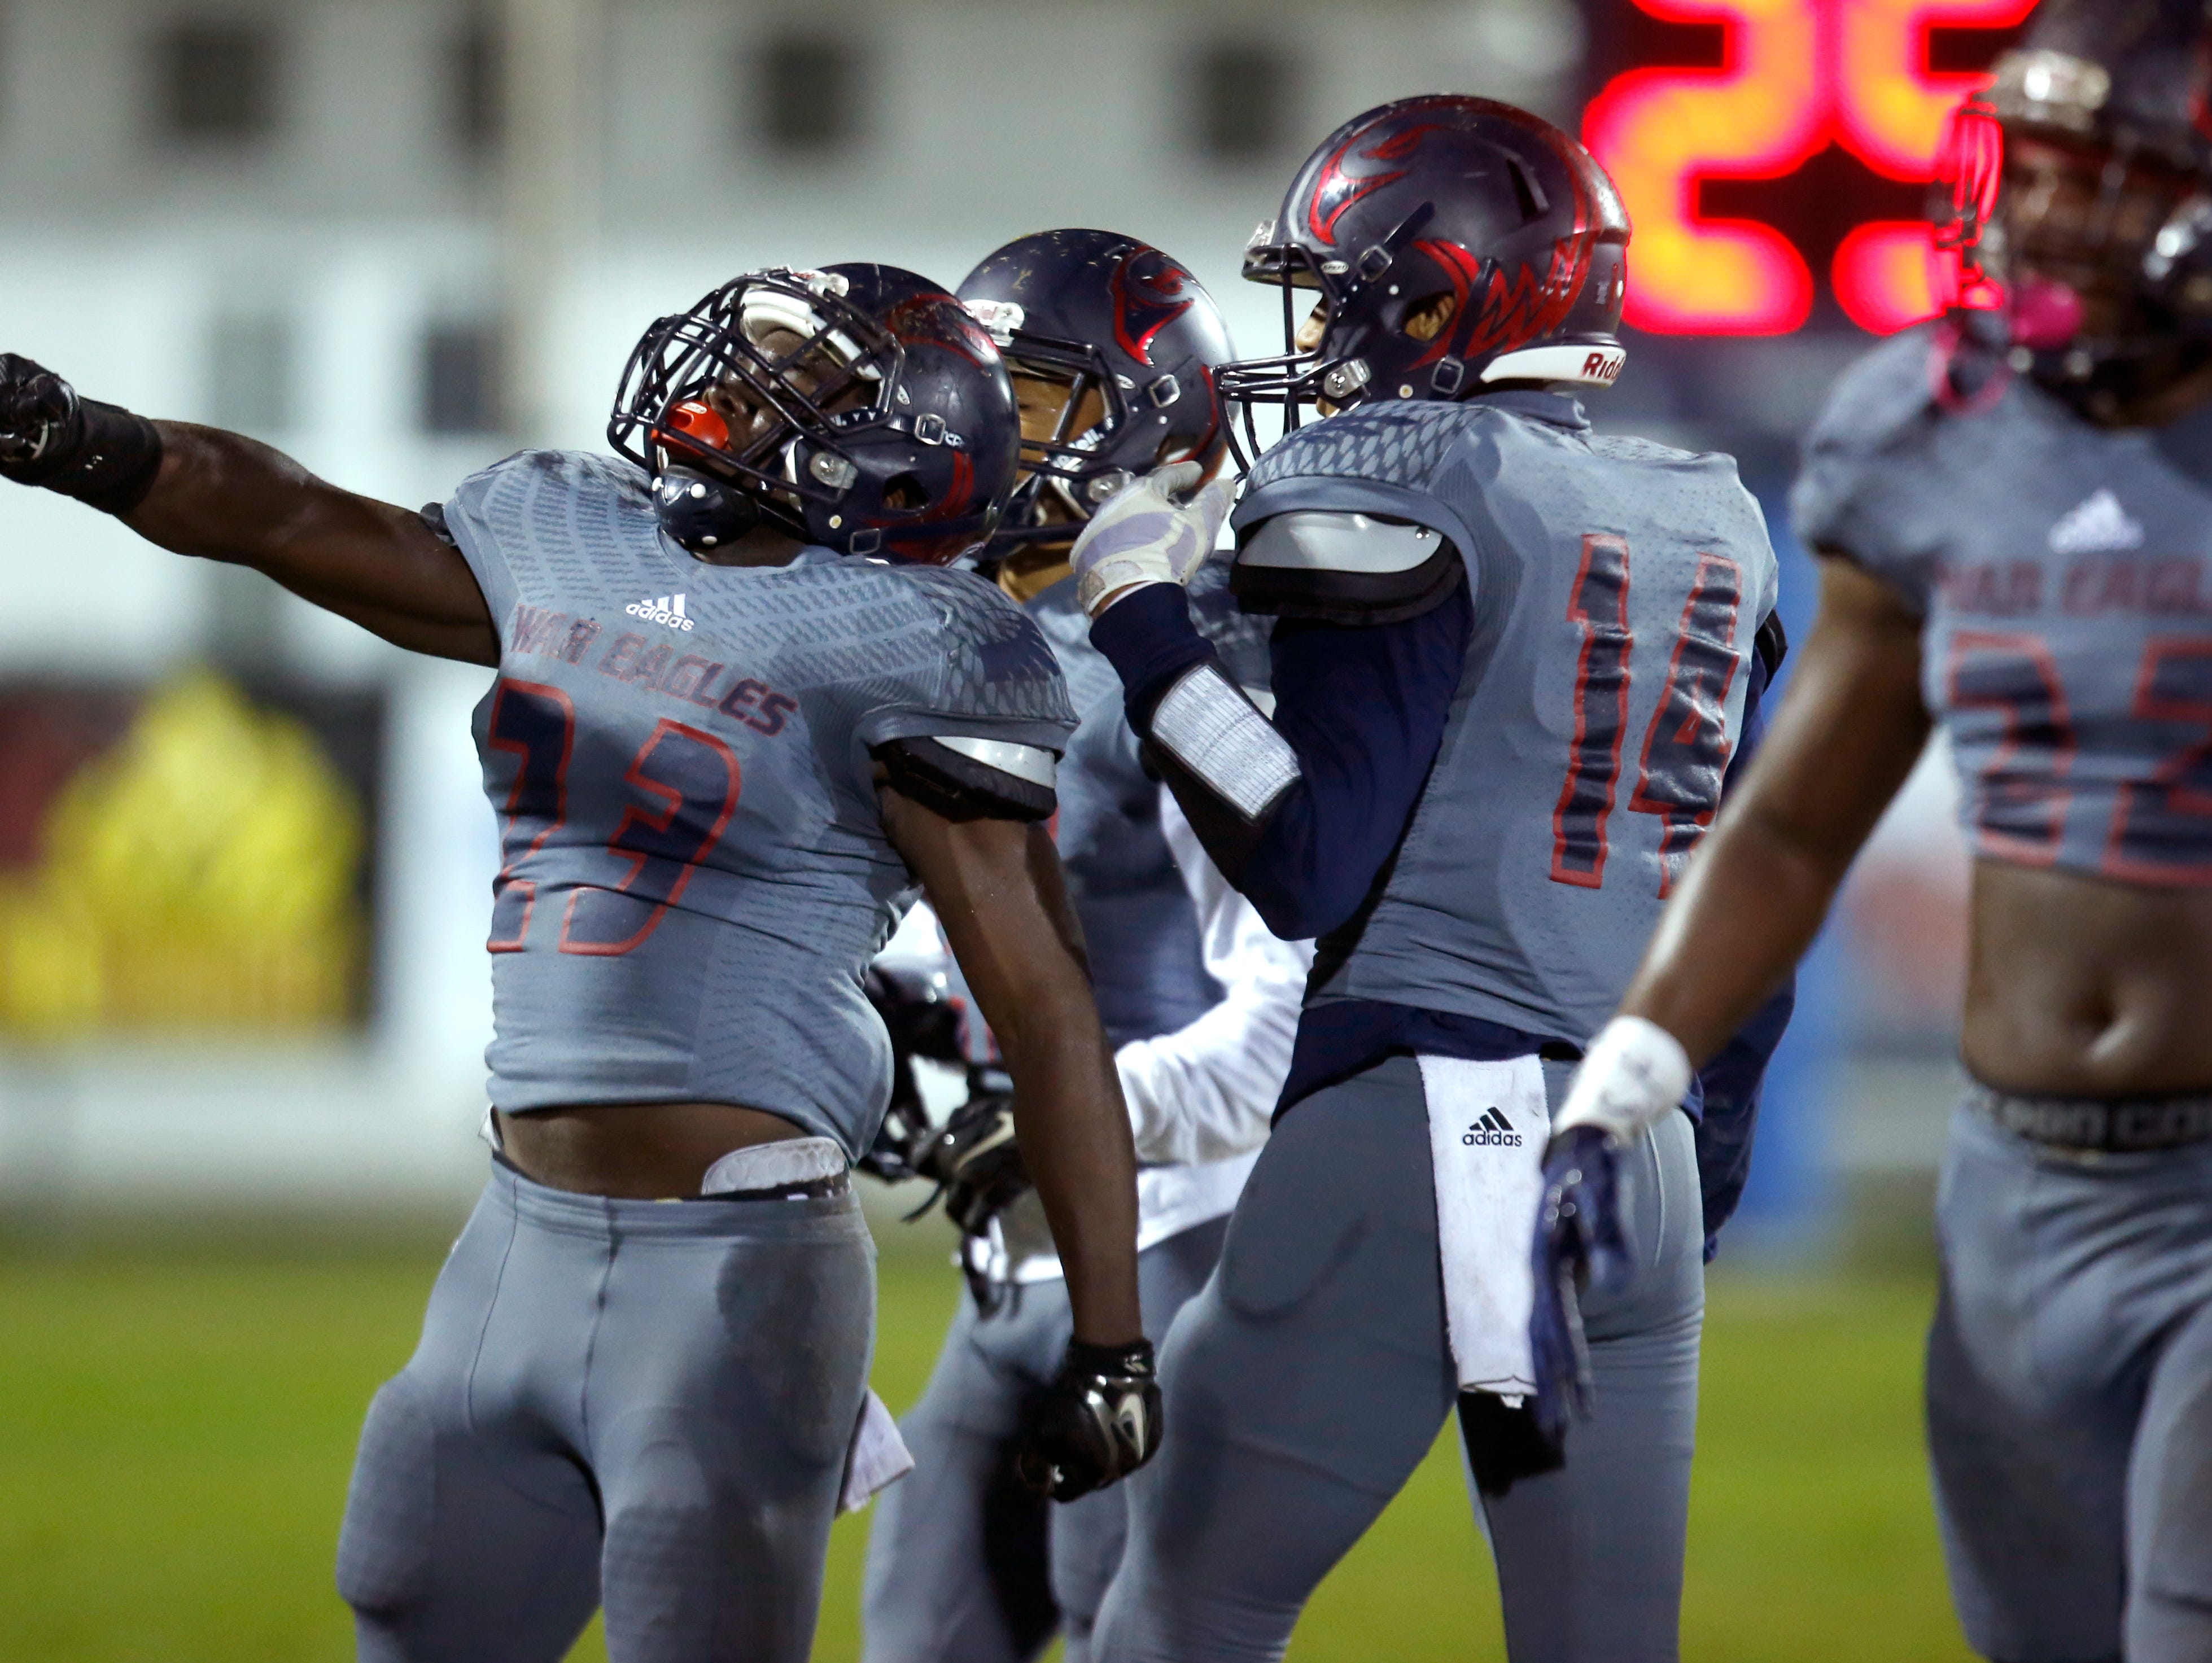 Wakulla's Antonio Morris celebrates after his team pressures Rickards quarterback into throwing an interception during their playoff game on Friday.